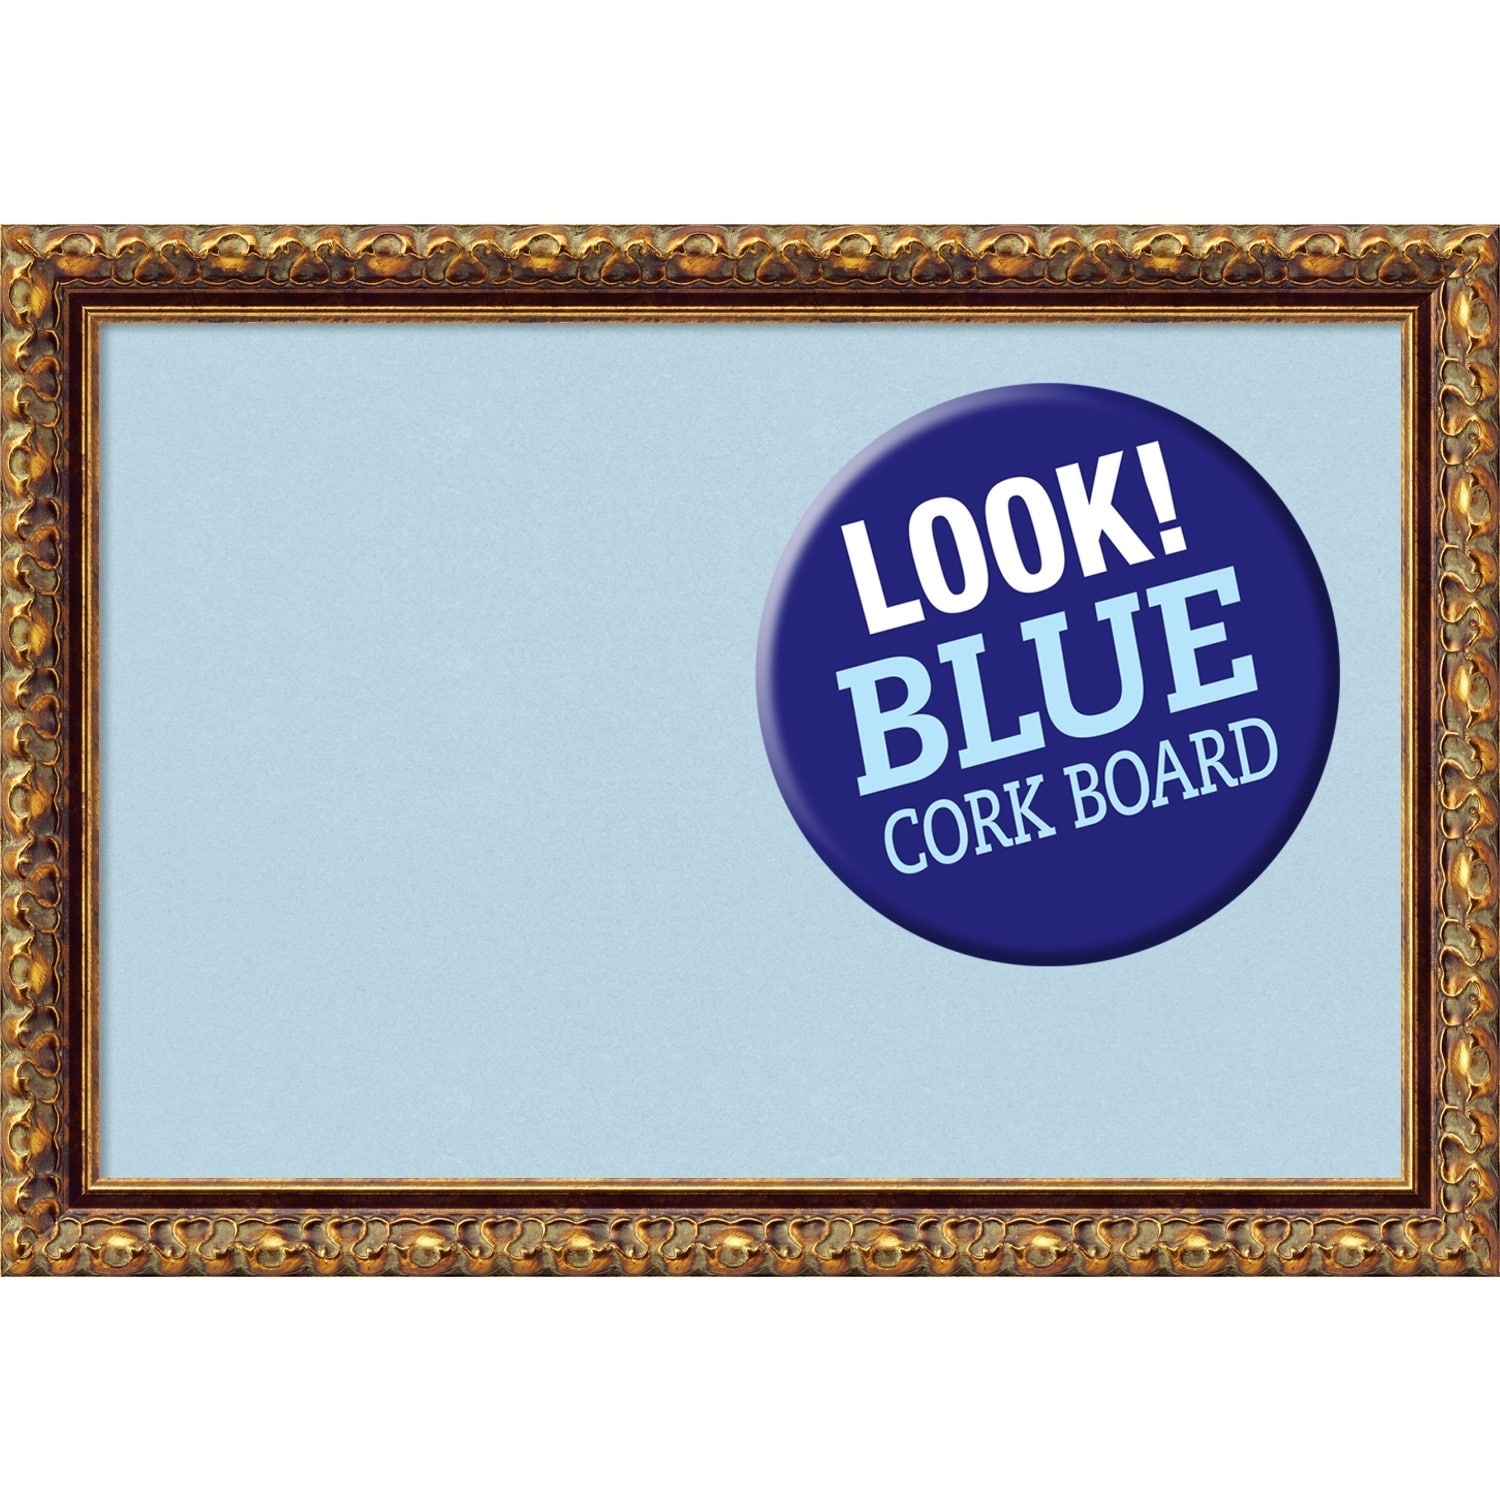 Amanti Art Framed White Cork Board, Antique Bronze